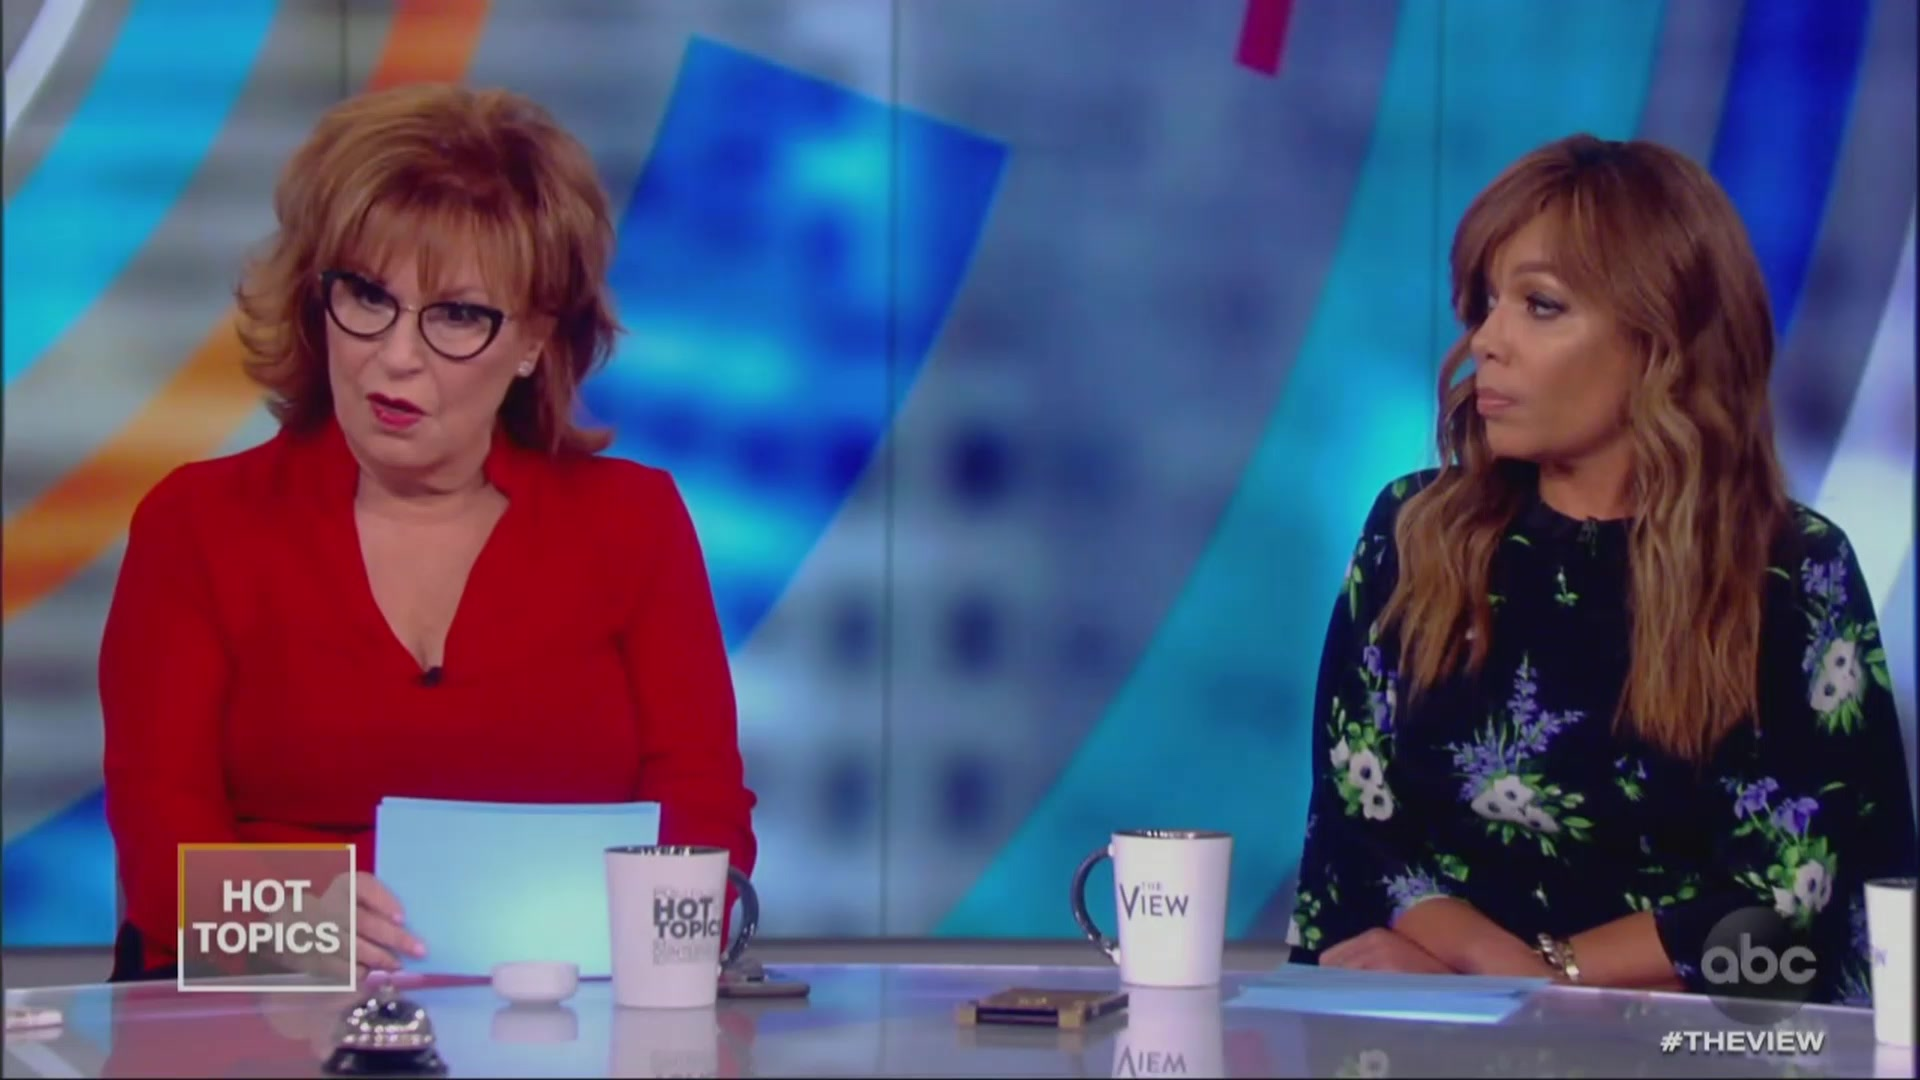 'The View' Blasts 'Absolute Clown Show' Corey Lewandowski: 'Murderers and Pimps' Behave Better Than Him